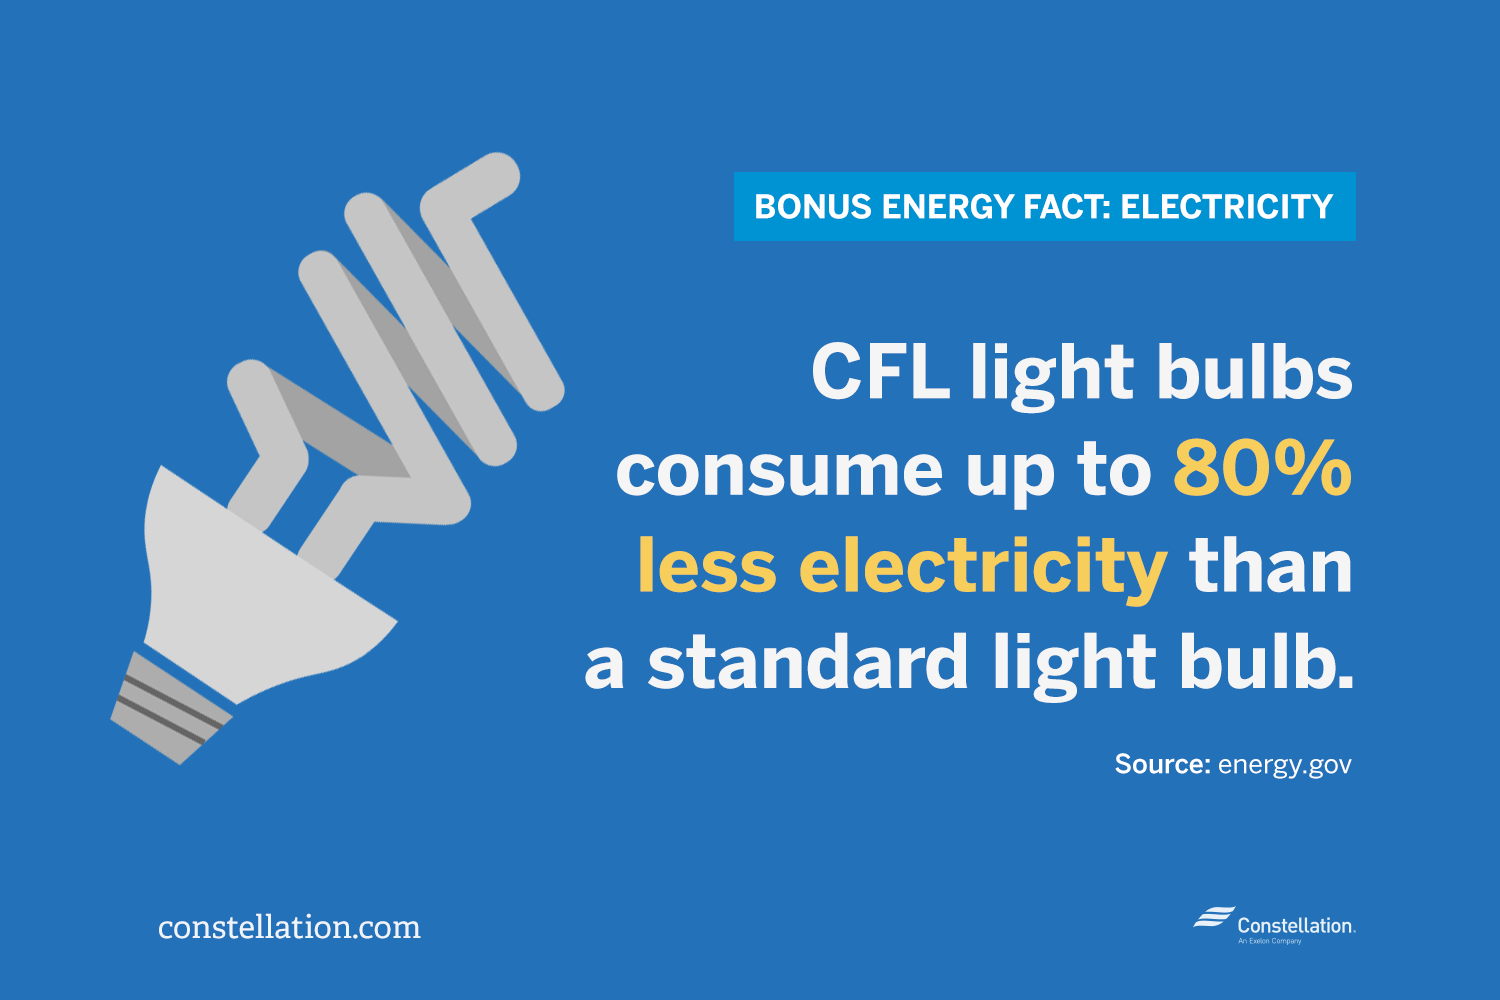 CFL bulbs consume 80% less electricity than standard bulbs